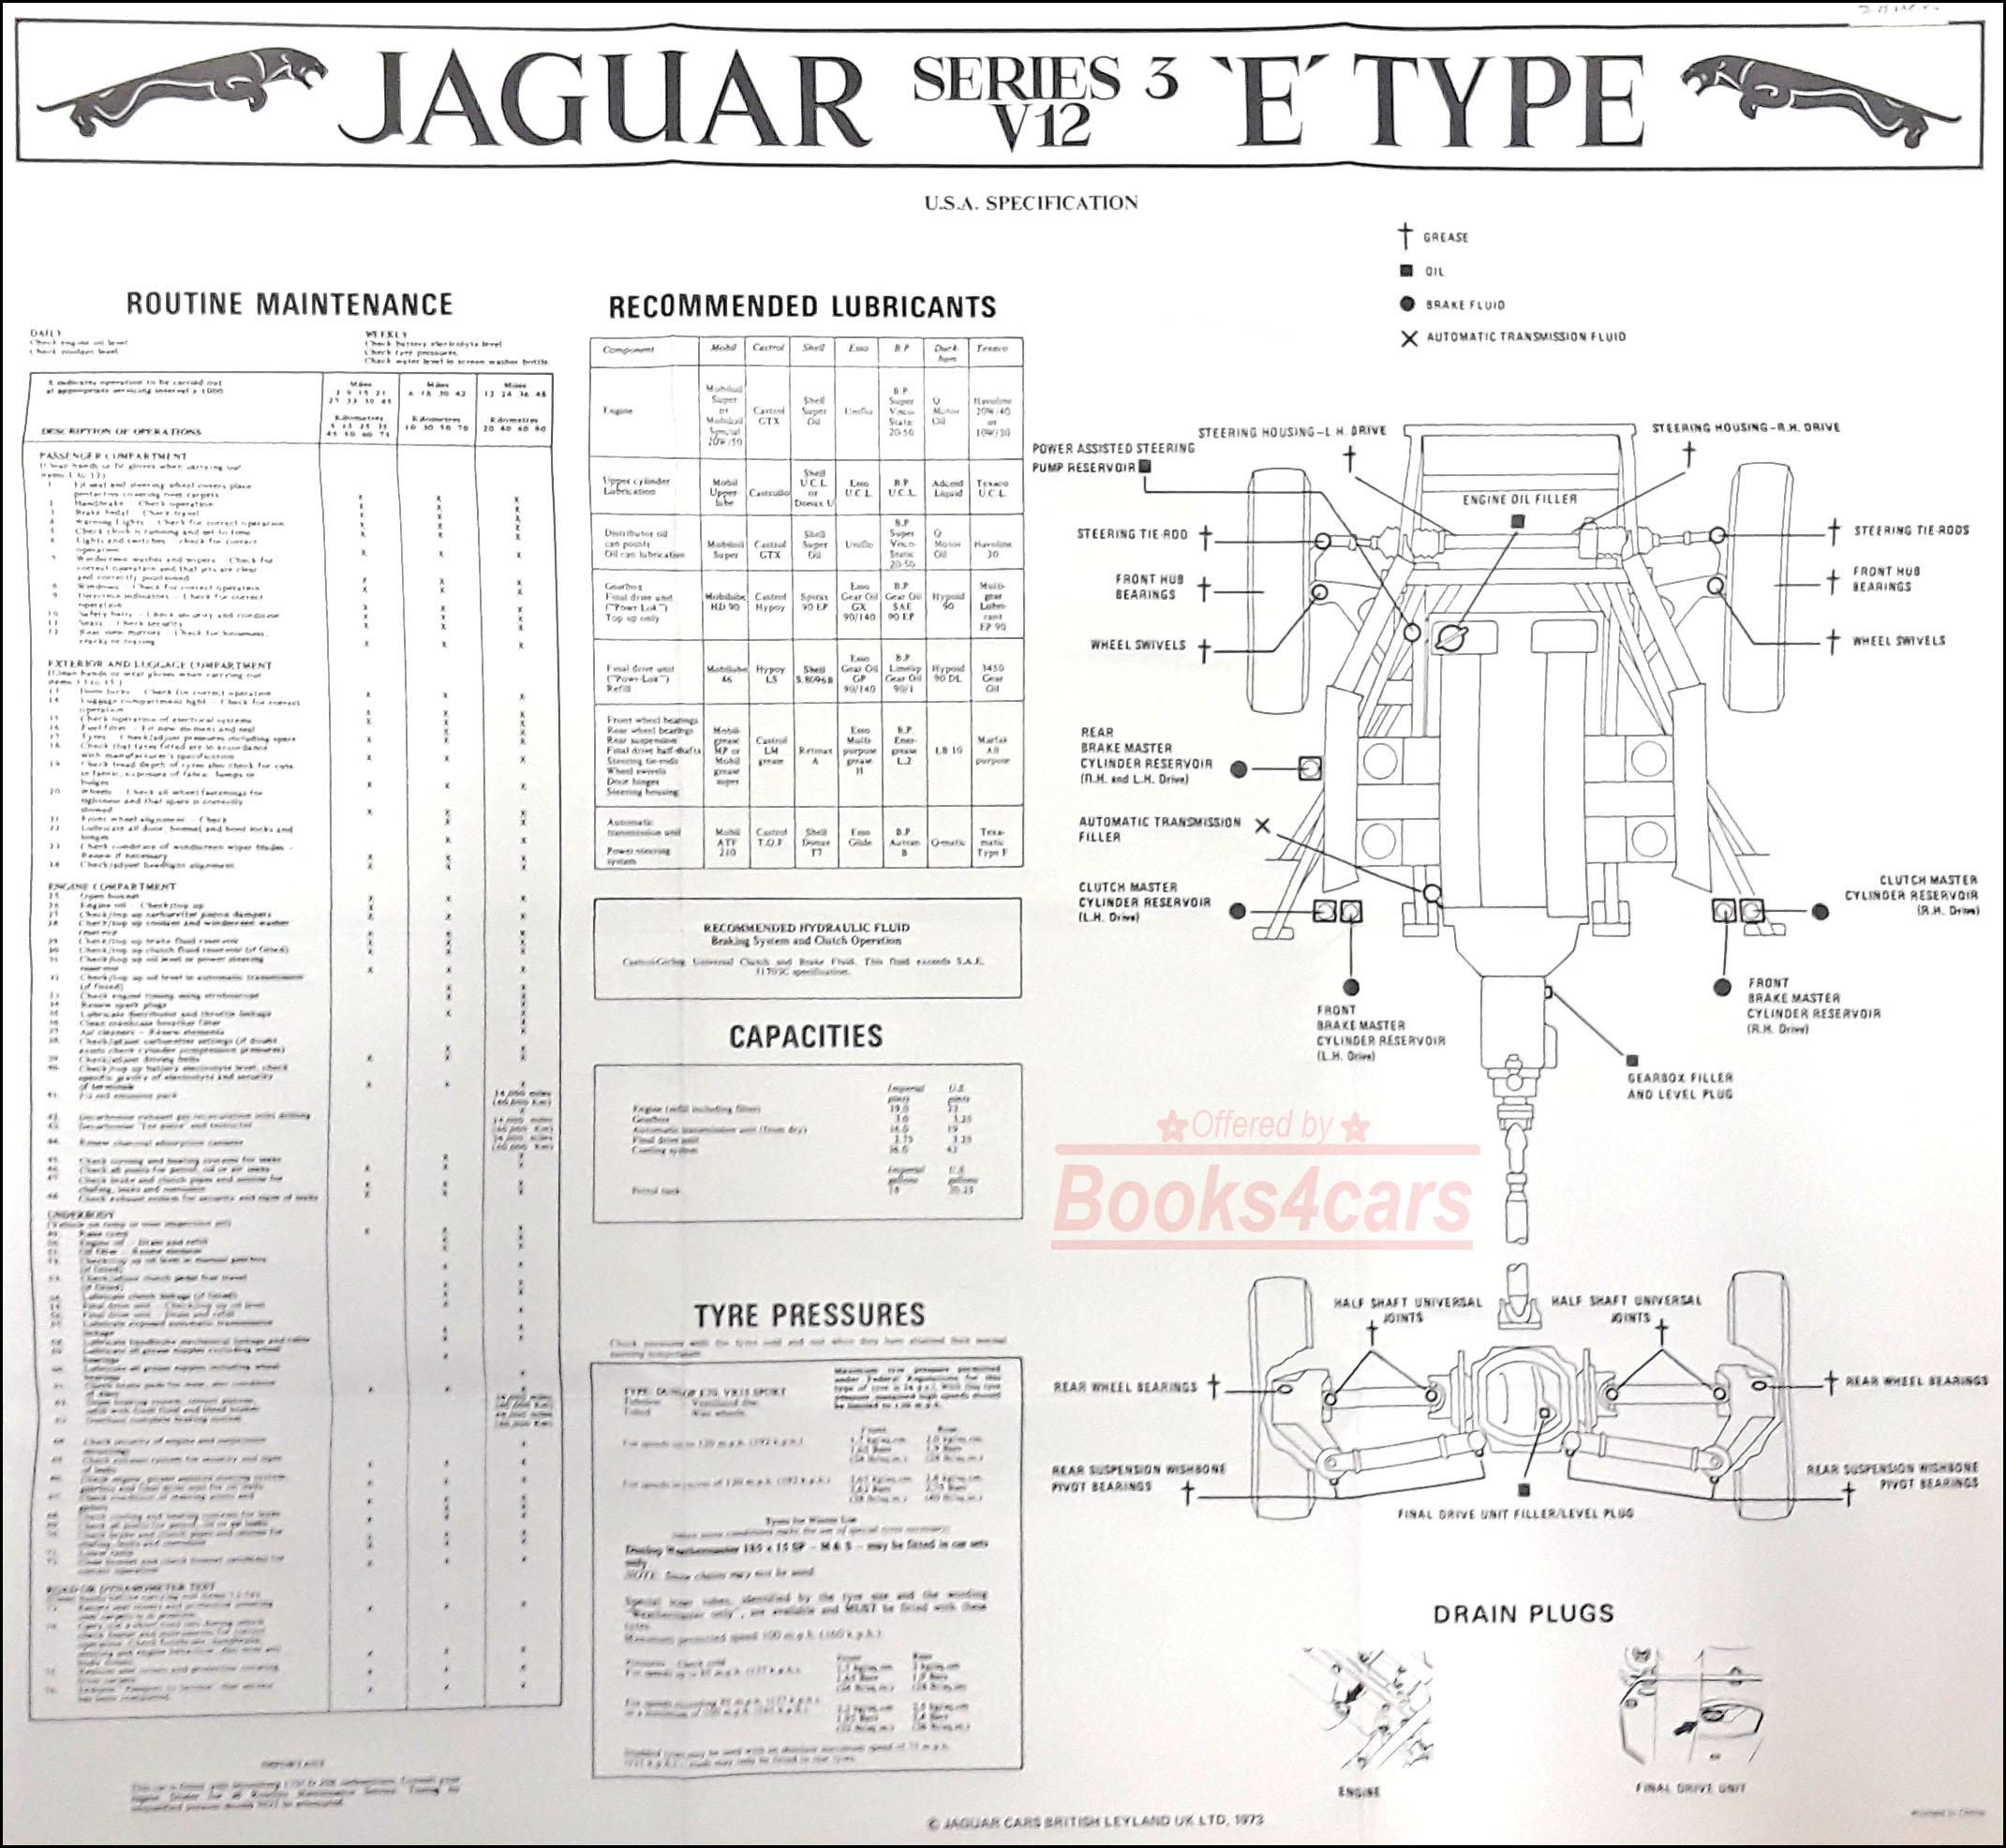 Jaguar V12 Wiring Diagram Archive Of Automotive Xjs Maintenance Xke E Type Electrical S3 1971 1975 Ebay Rh Com